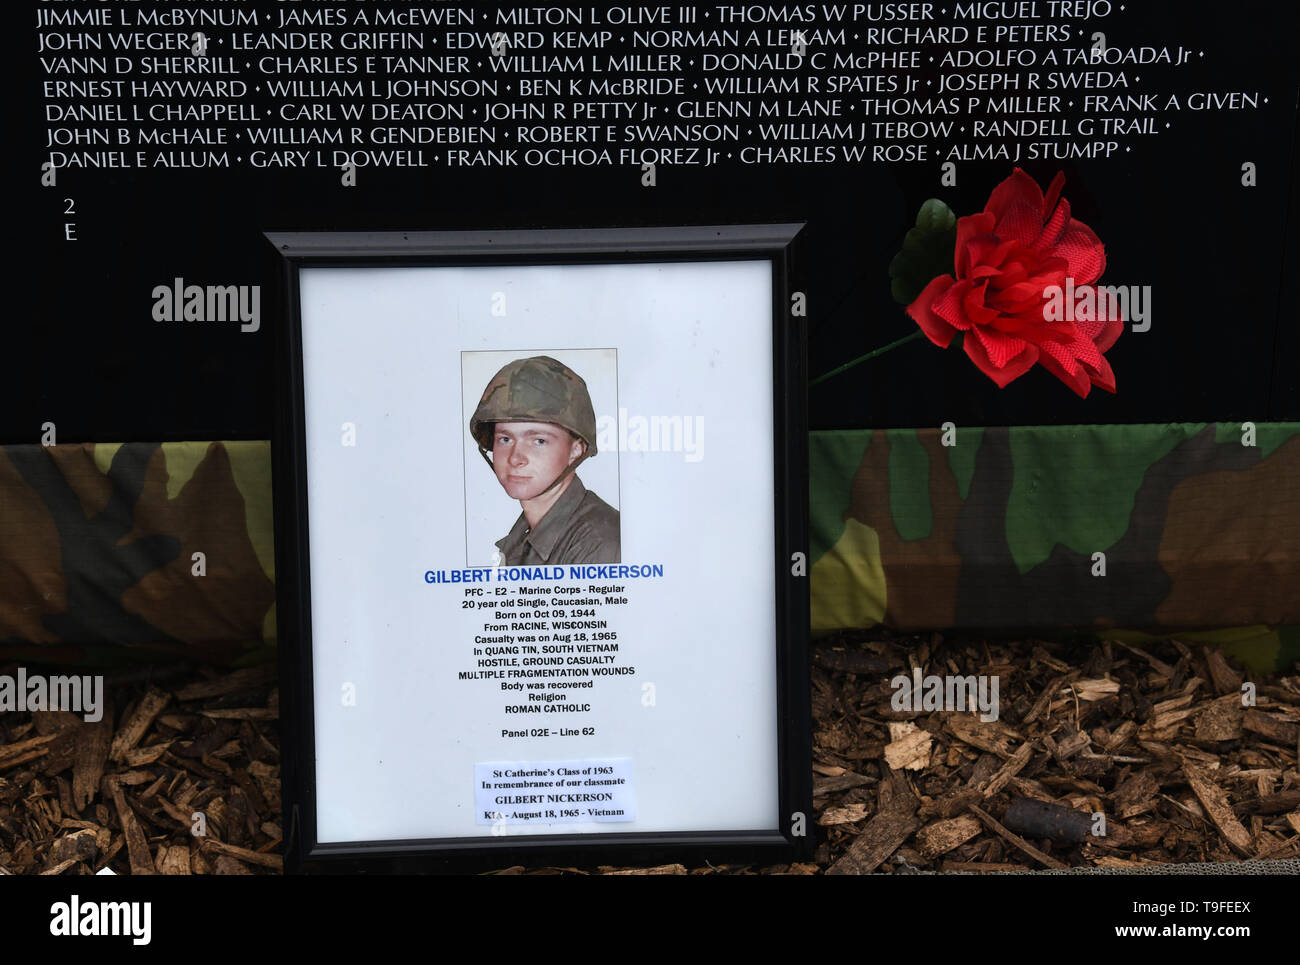 Racine, Wisconsin, USA. 18th May, 2019. Gilbert Ronald Nickerson, the first Racine soldier killed in Vietnam, is honored at the Moving Wall, a half-size replica of the Vietnam Veterans Memorial, in Racine, Wisconsin, Saturday May 18, 2019. He died August 18, 1965. Forty-seven soldiers from Racine were killed during the war. The Moving Wall has been touring the United States for more than 30 years. Credit: Mark Hertzberg/ZUMA Wire/Alamy Live News - Stock Image